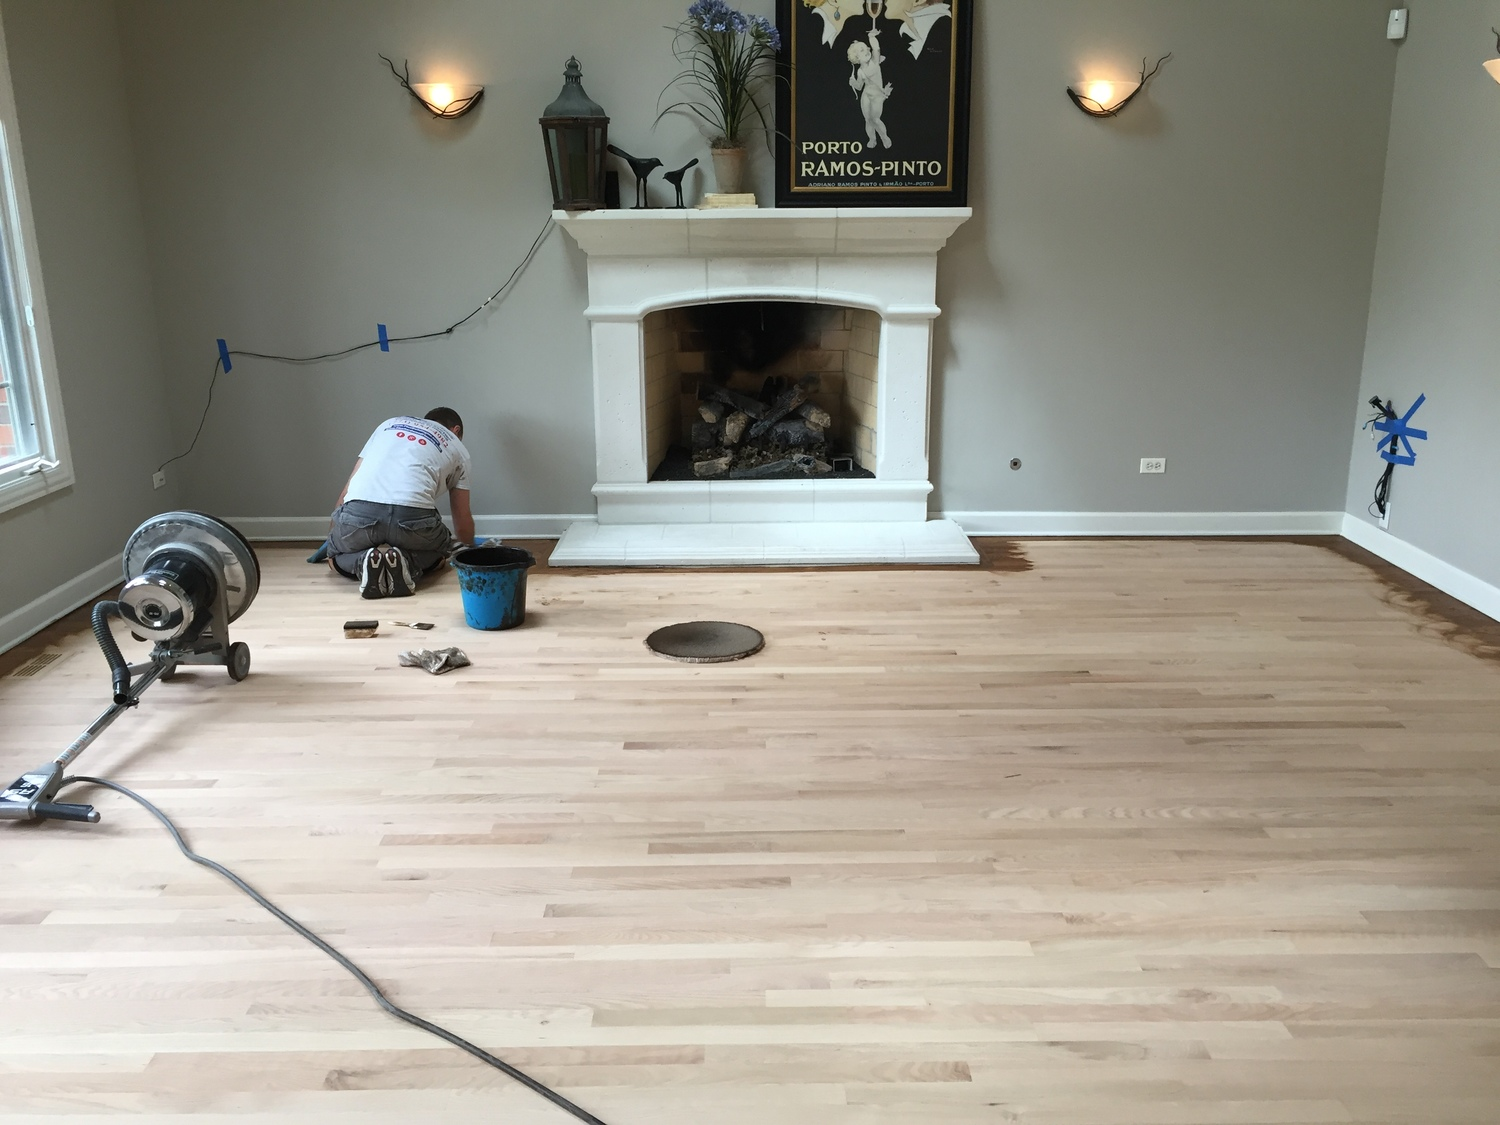 How To Refinish Your Hardwood Floors Final Sanding With The Buffer Floor Refinishing Services In Chicago Flooring Companies